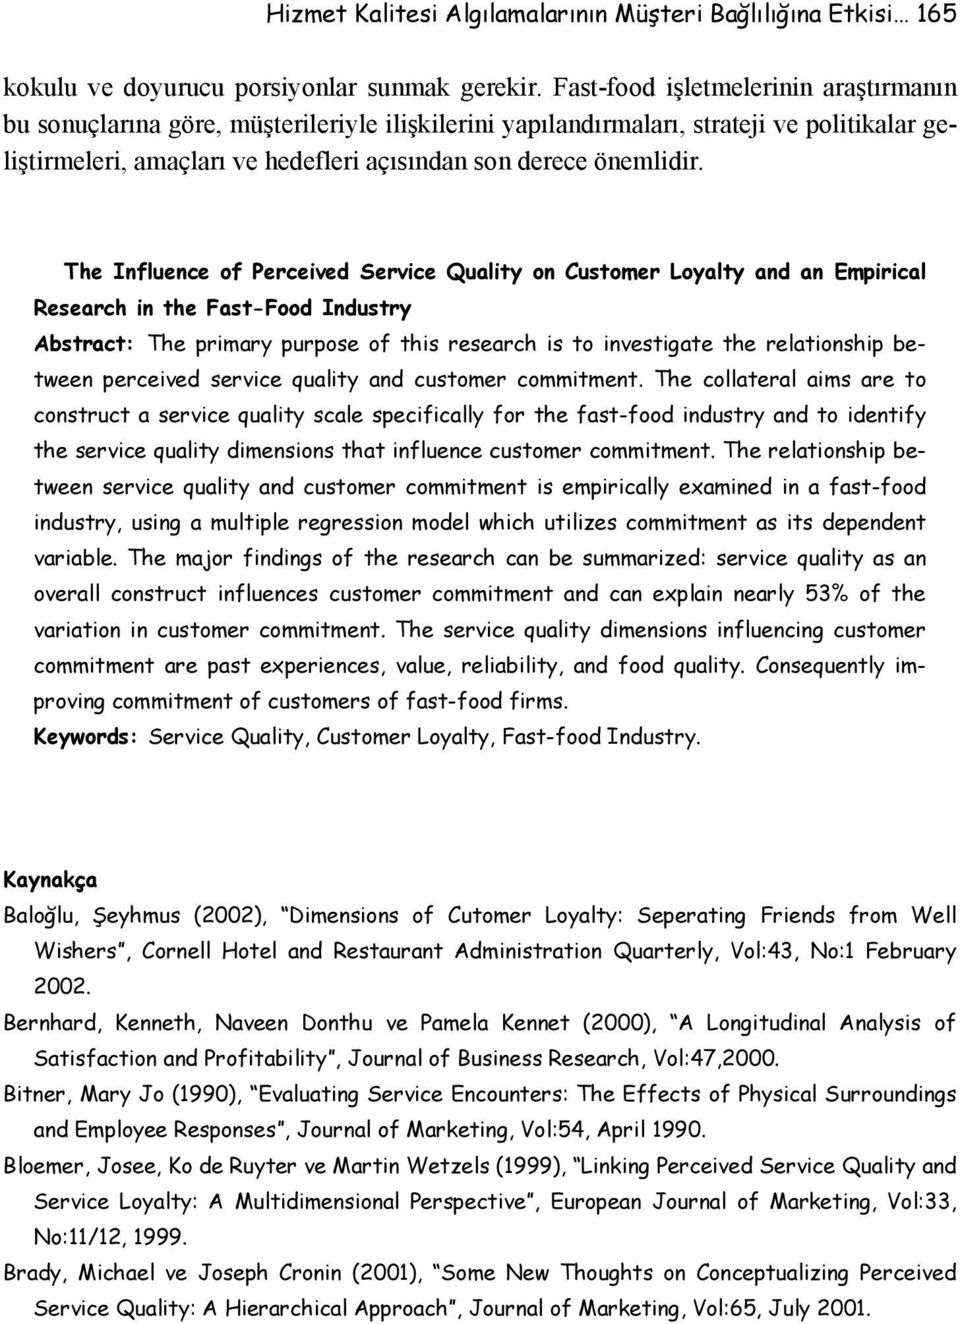 The Influence of Perceived Service Quality on Customer Loyalty and an Empirical Research in the Fast-Food Industry Abstract: The primary purpose of this research is to investigate the relationship